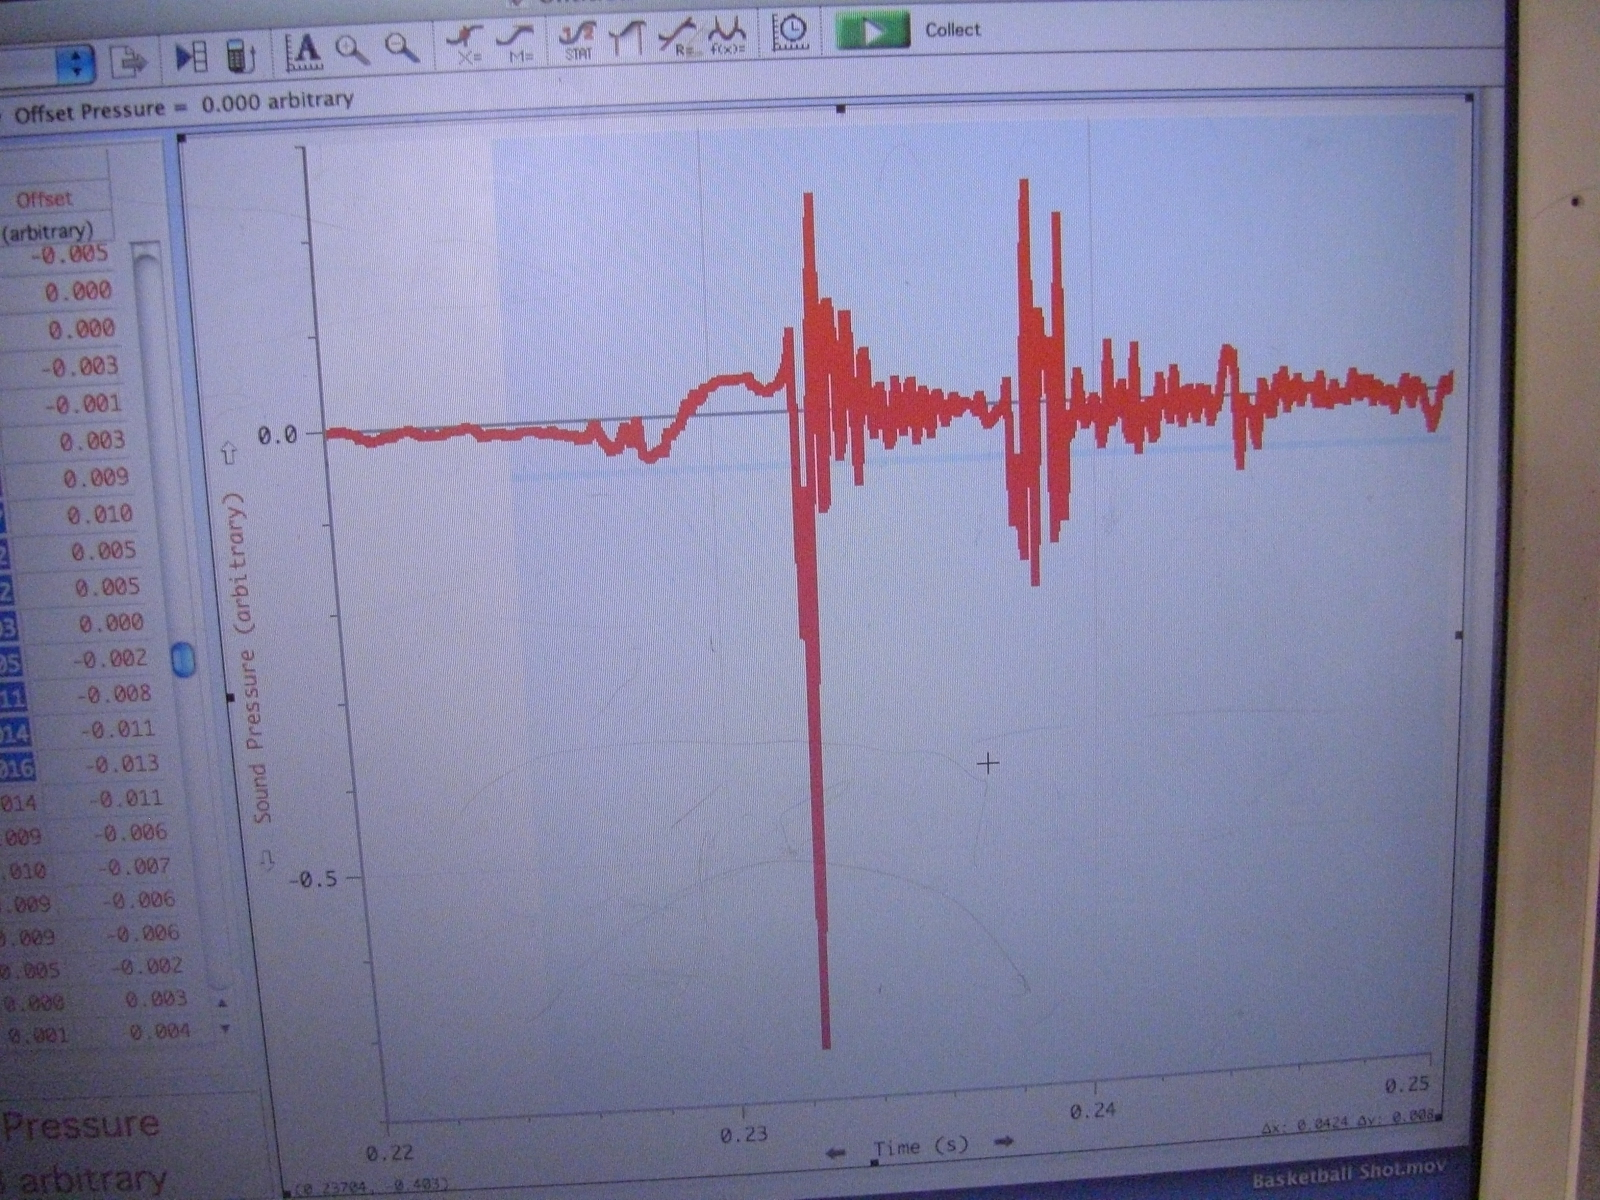 physics speed of sound lab report How to calculate speed of sound in air using a signal generator, loud speaker, oscilloscope and microphone using the wave speed equation to calculate speed.